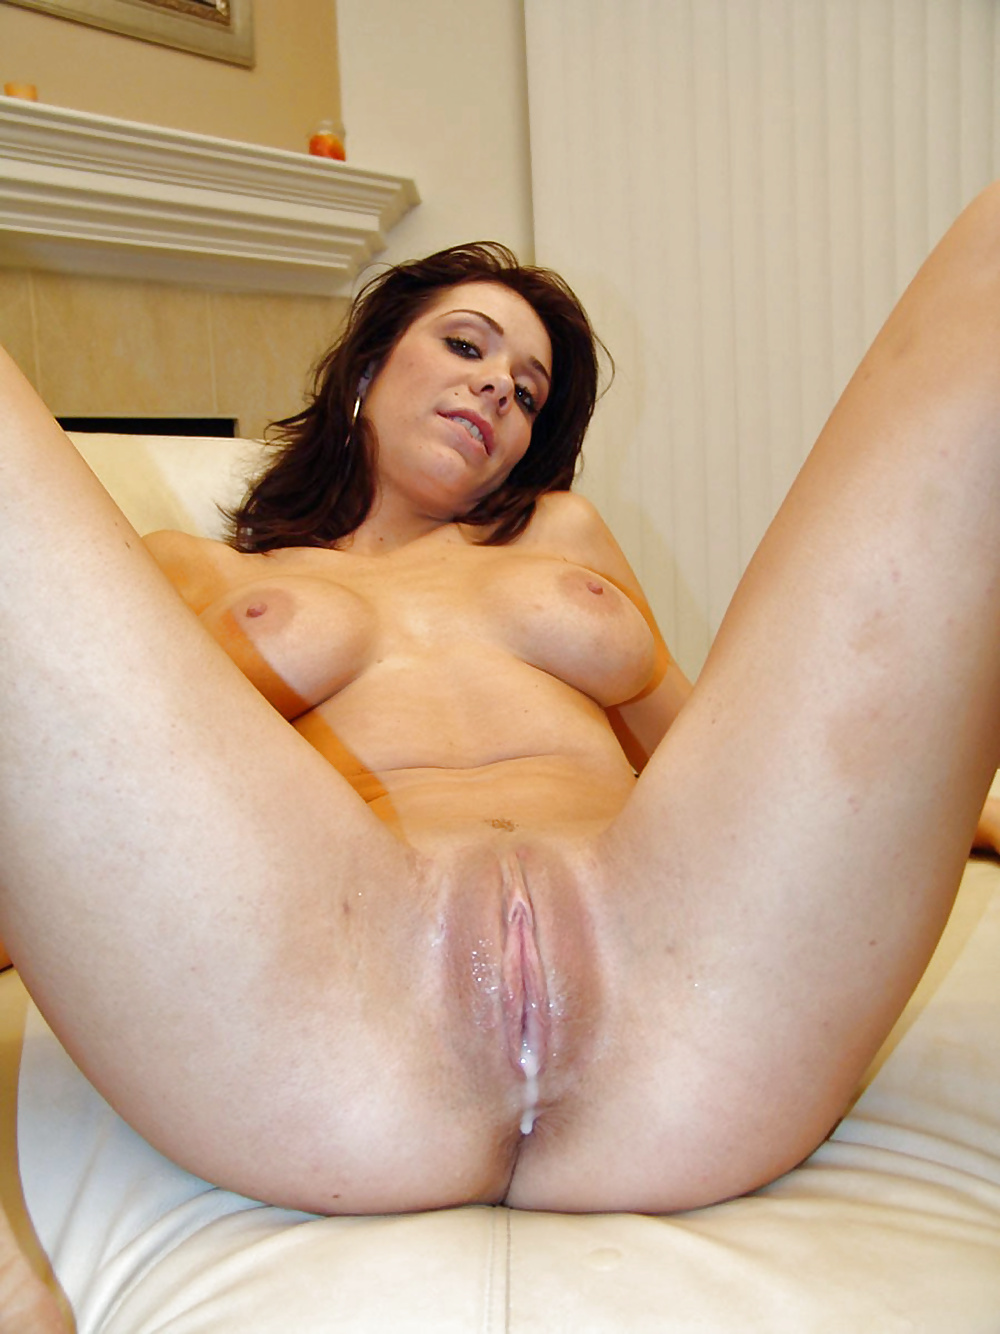 Hot nude women creampie #10